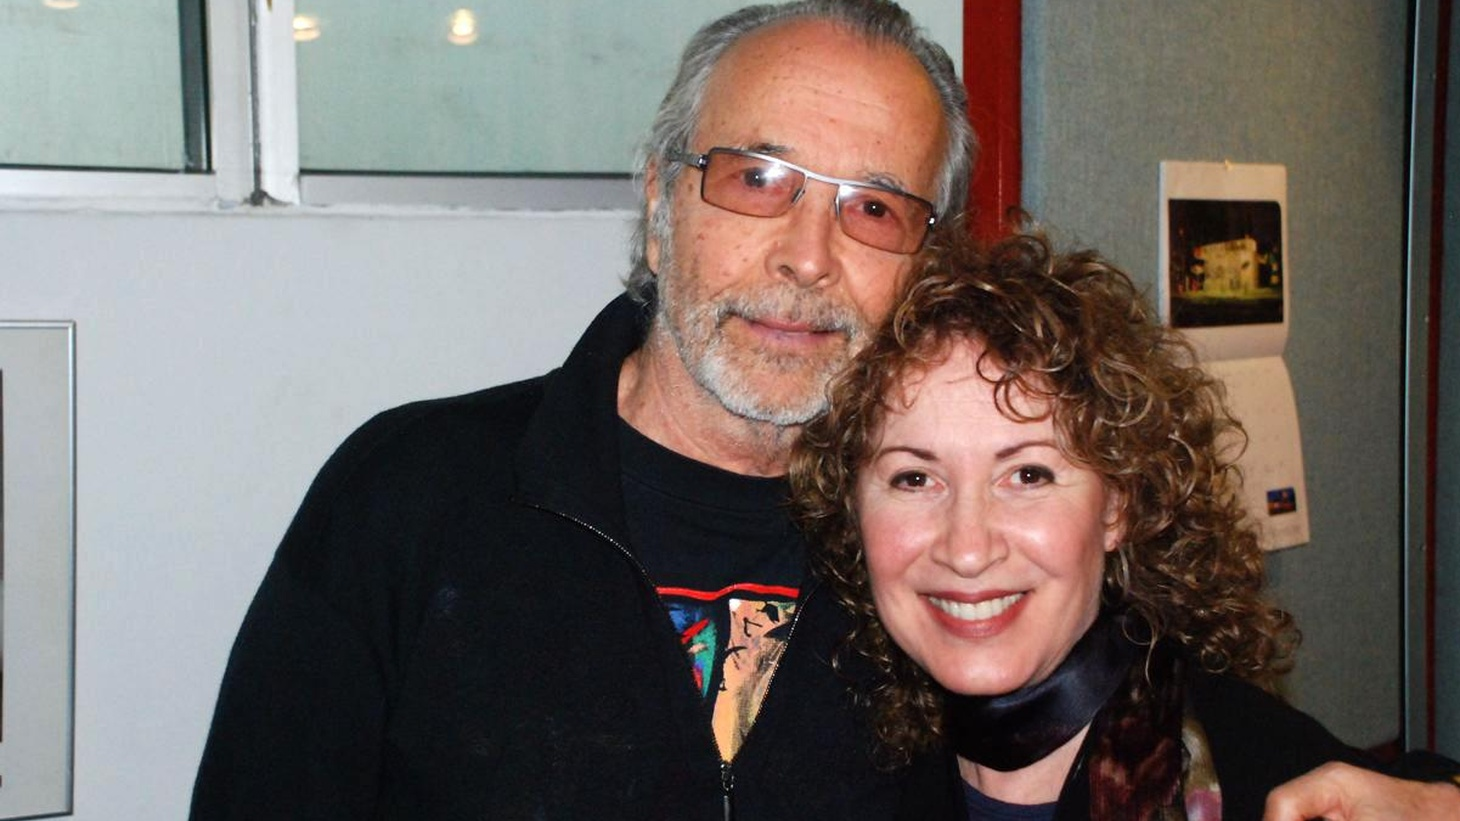 Music impresario Herb Alpert and Brasil 66 singer Lani Hall have been making music together, personally and professionally, for years. We'll hear about their musical union as they share songs that have inspired them as guest DJs on Morning Becomes Eclectic at 11:15am.